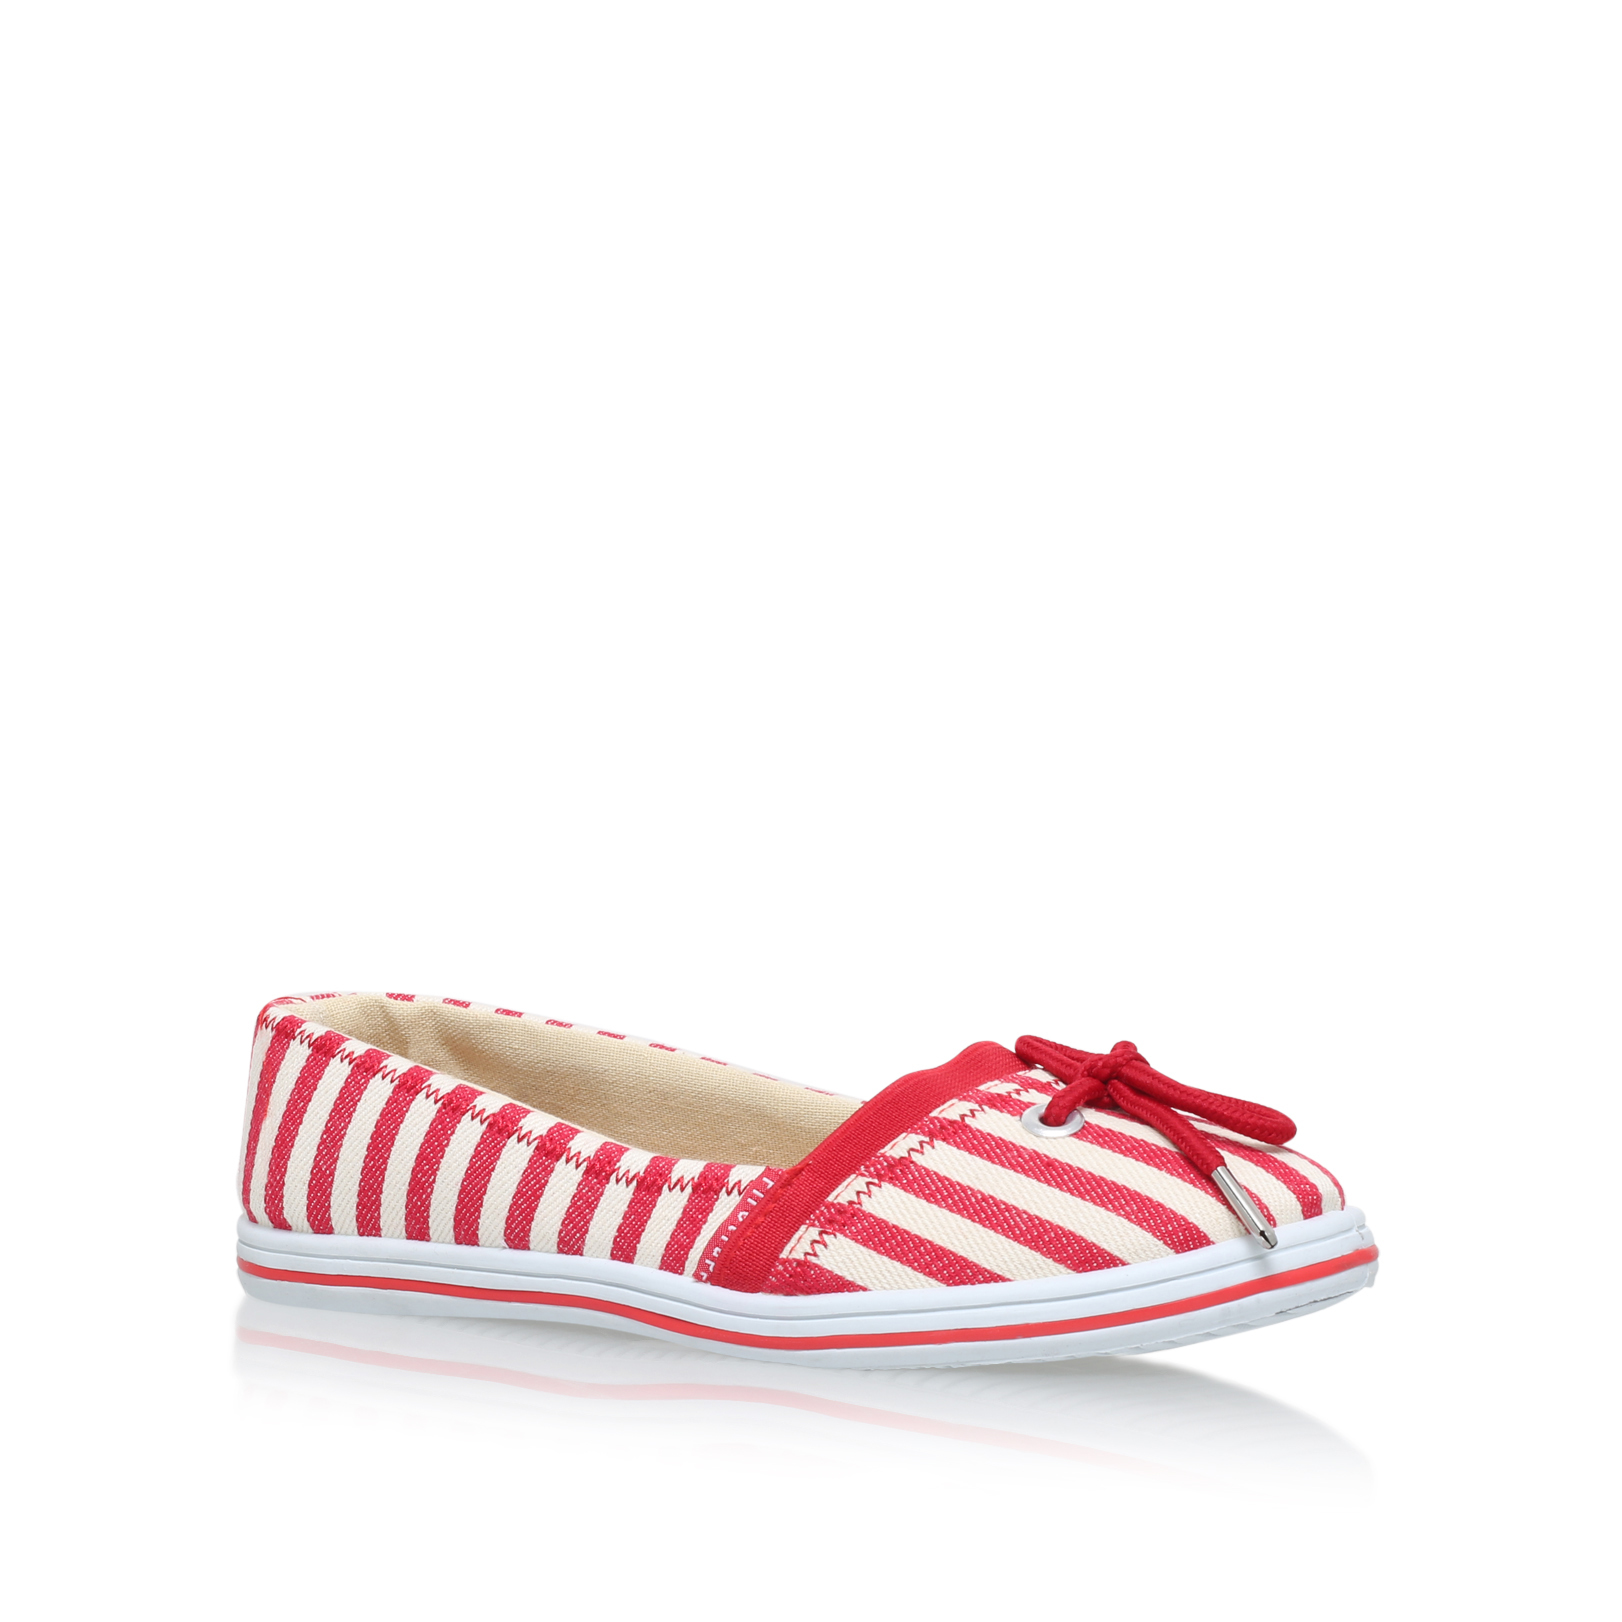 RED STRIPE FLAT PUMP